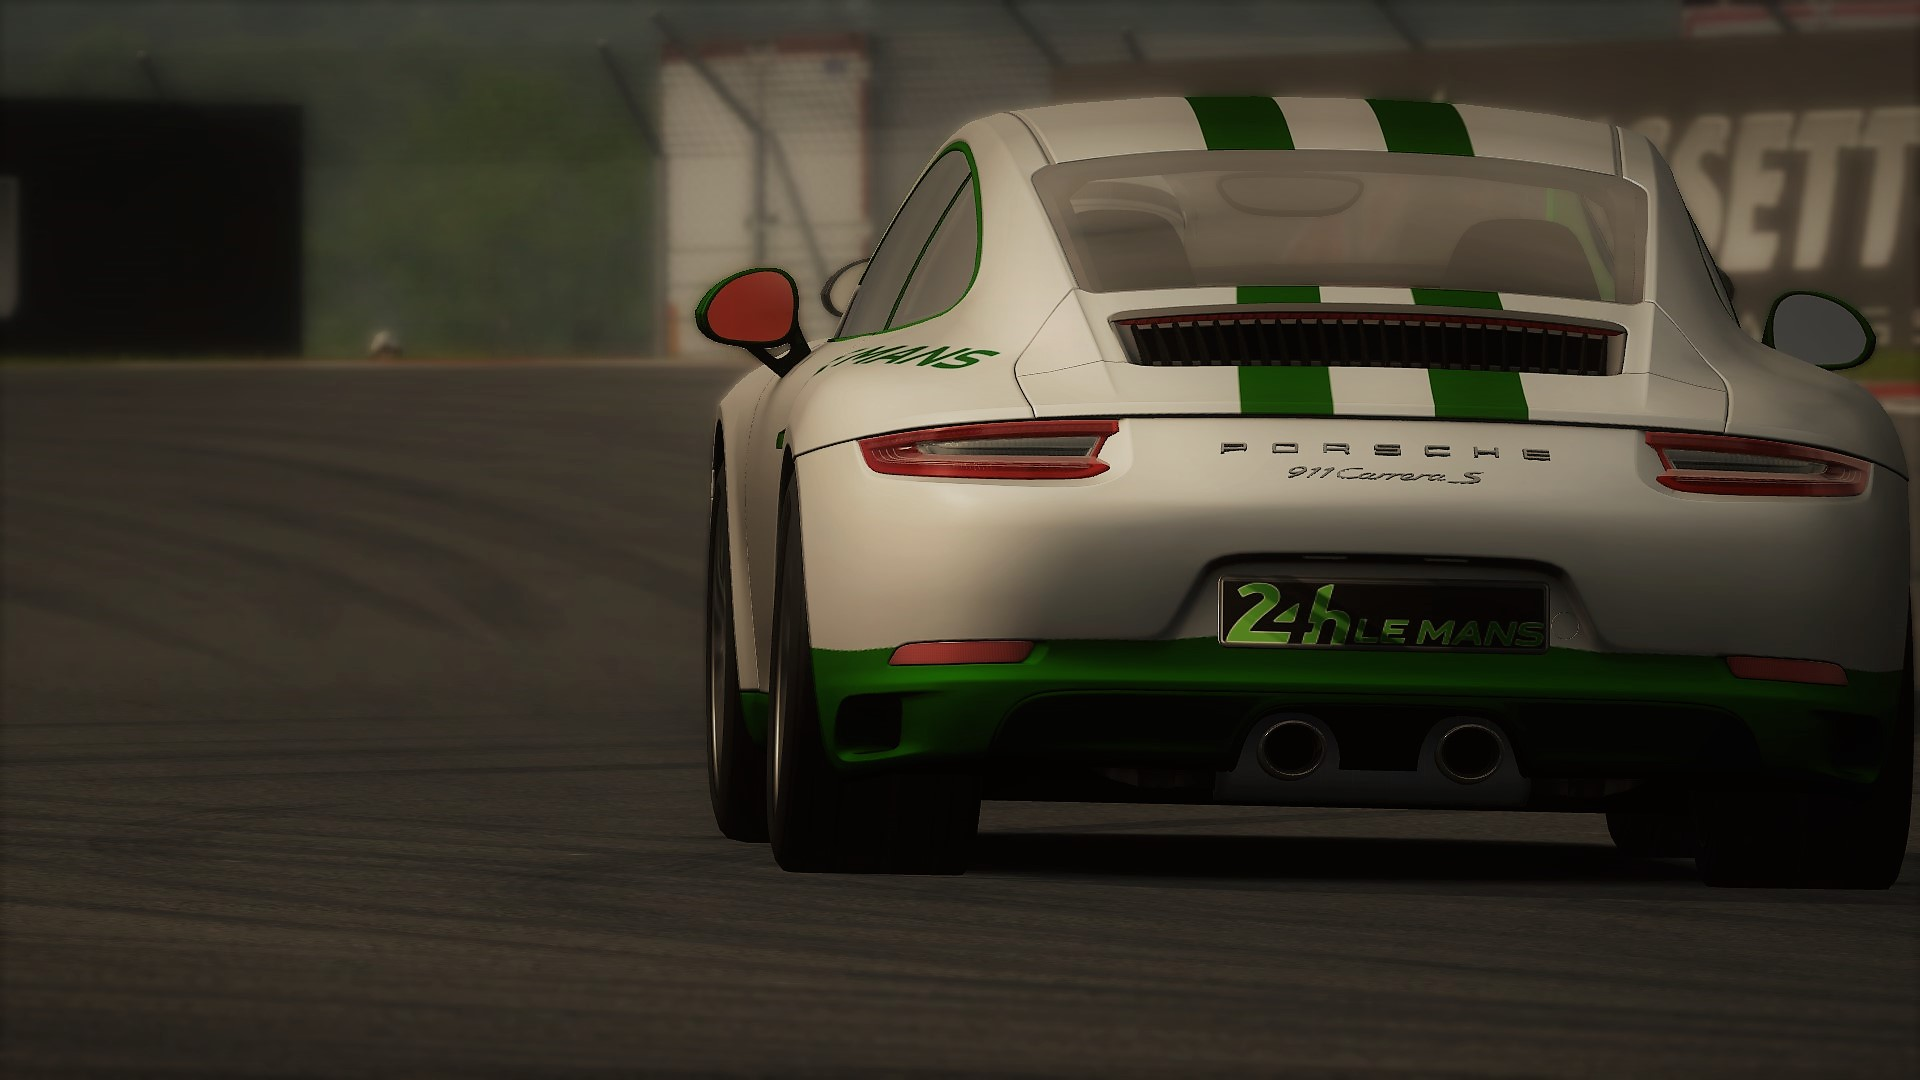 Screenshot_ks_porsche_991_carrera_s_ks_silverstone_9-12-116-13-42-24.jpg